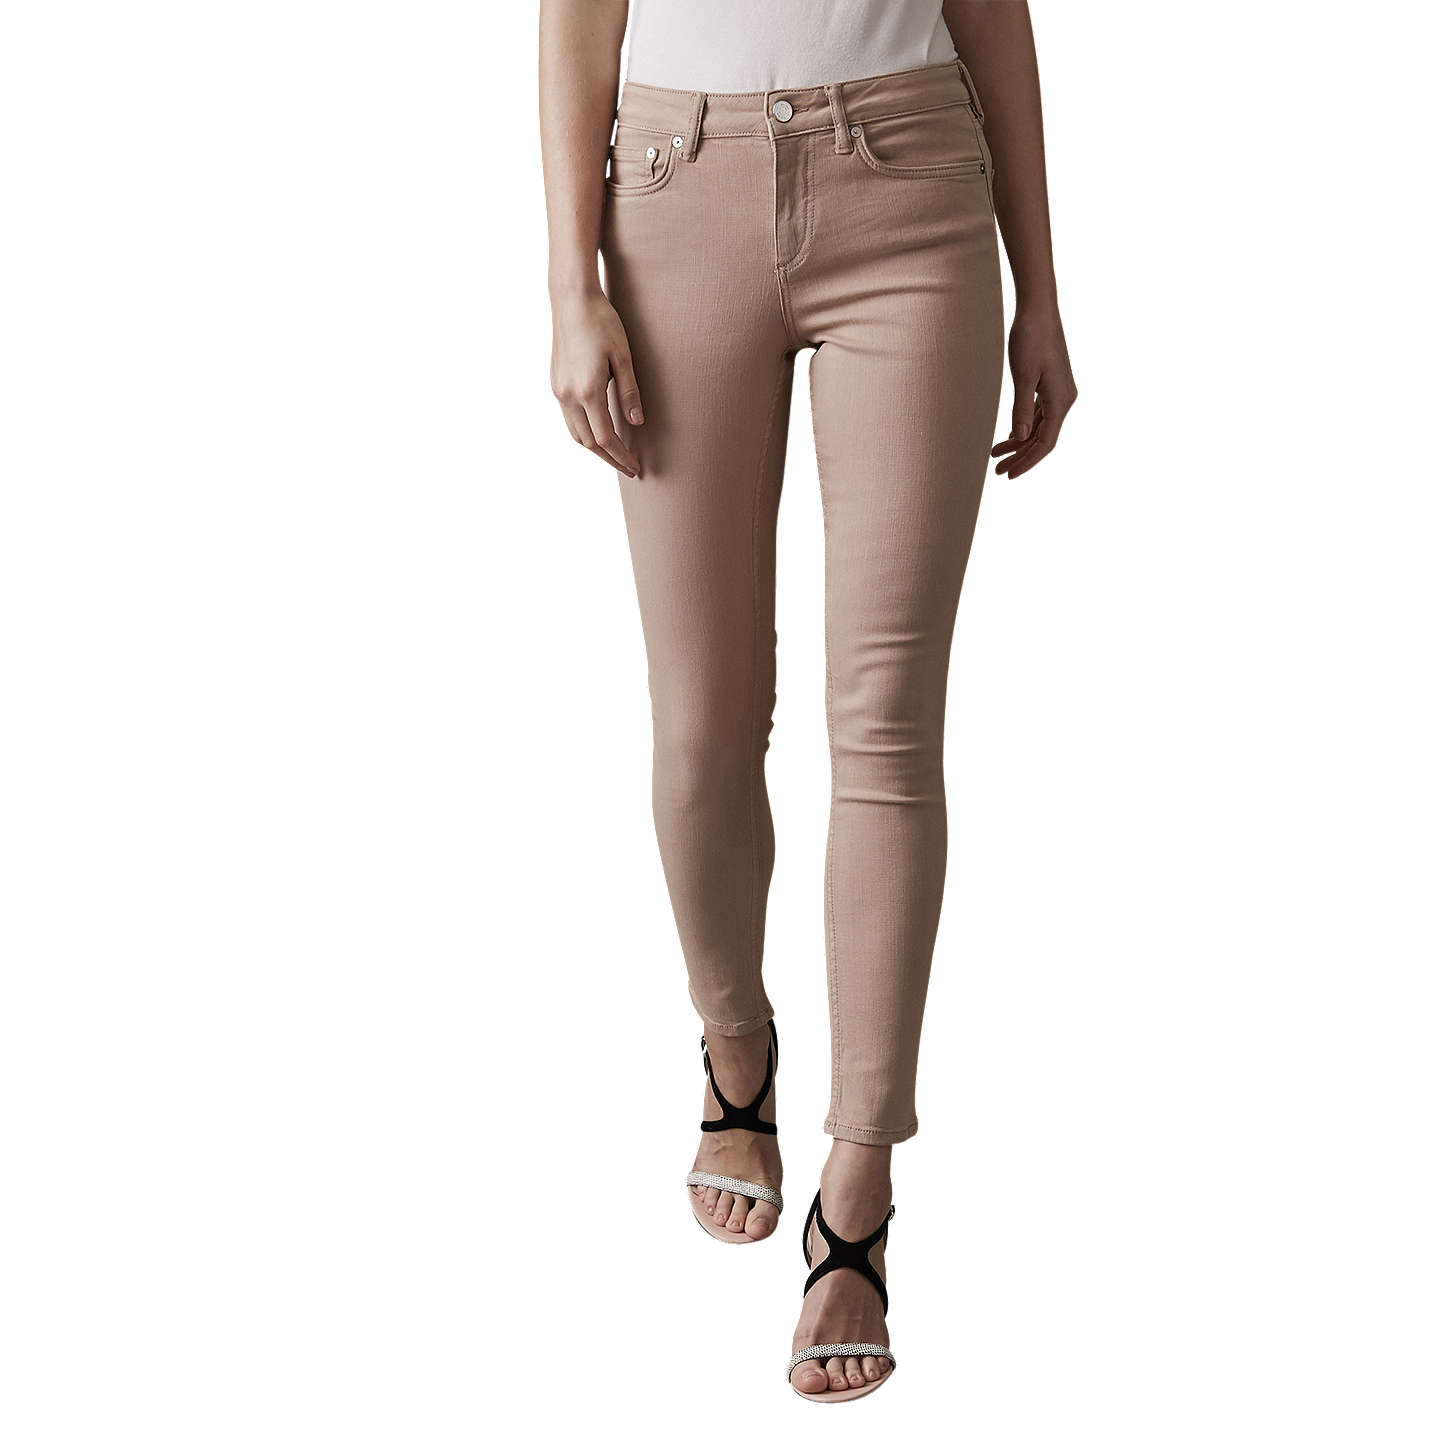 Stevie - Mid Rise Skinny Jeans in Soft Pink, Womens, Size 24 Reiss